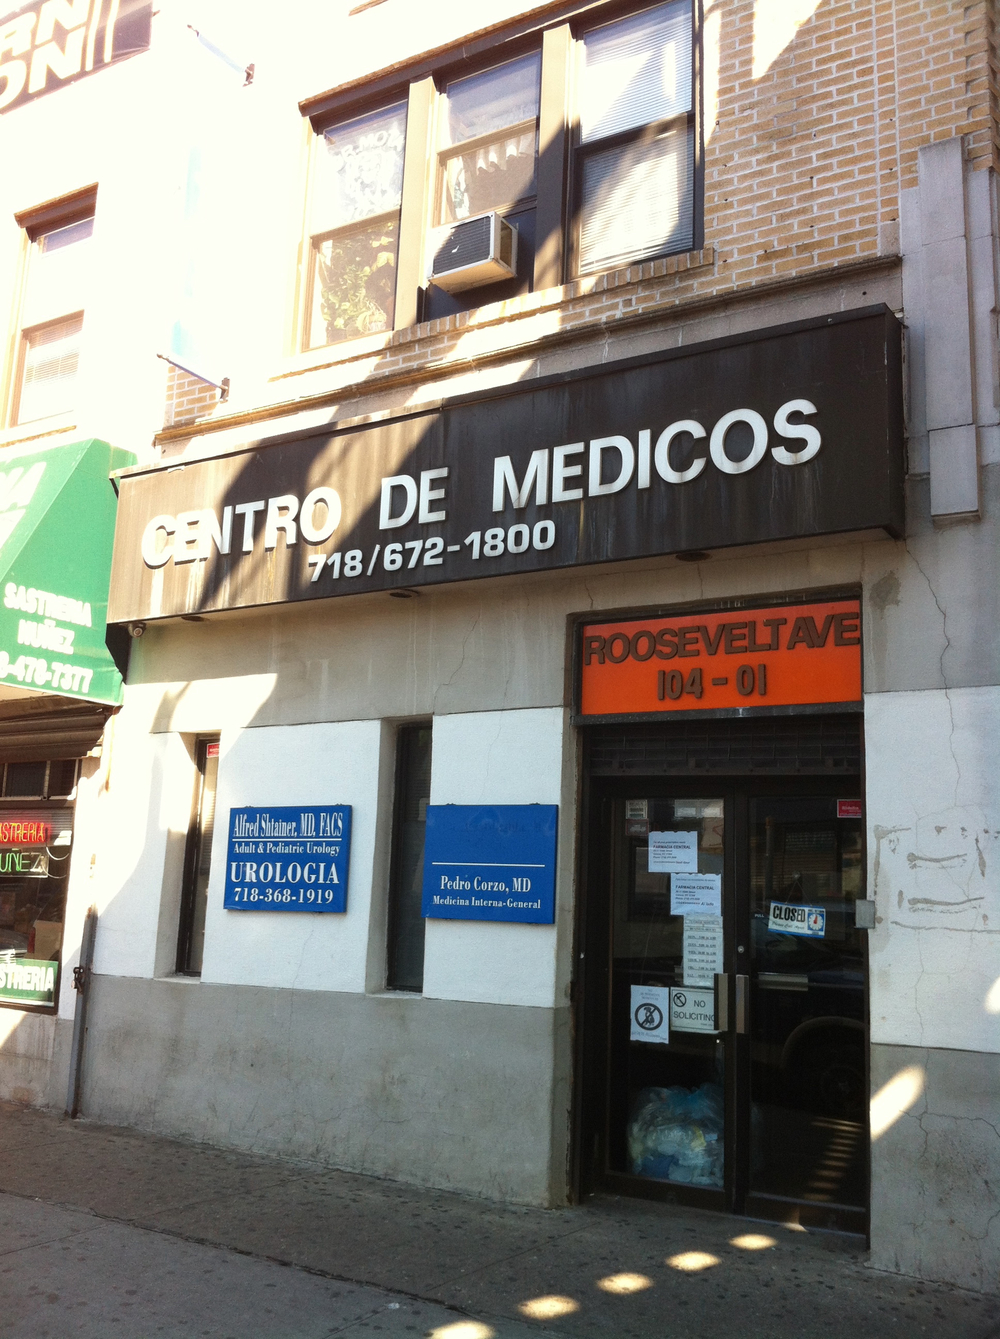 The medical office building on the corner of Roosevelt Avenue and 104th Street, as seen on October 5, 2014.  According to a 2009 report in  The New York Daily News , this office building was where each of :  the State Senator Peralta's mother worked, the State Senator once operated his campaign office, the State Senator used as the office for the  Corona-Elmhurst Center for Economic Development , and a partner in one of the State Senator's real estate investments operates her dentistry office.  Source : Louis Flores